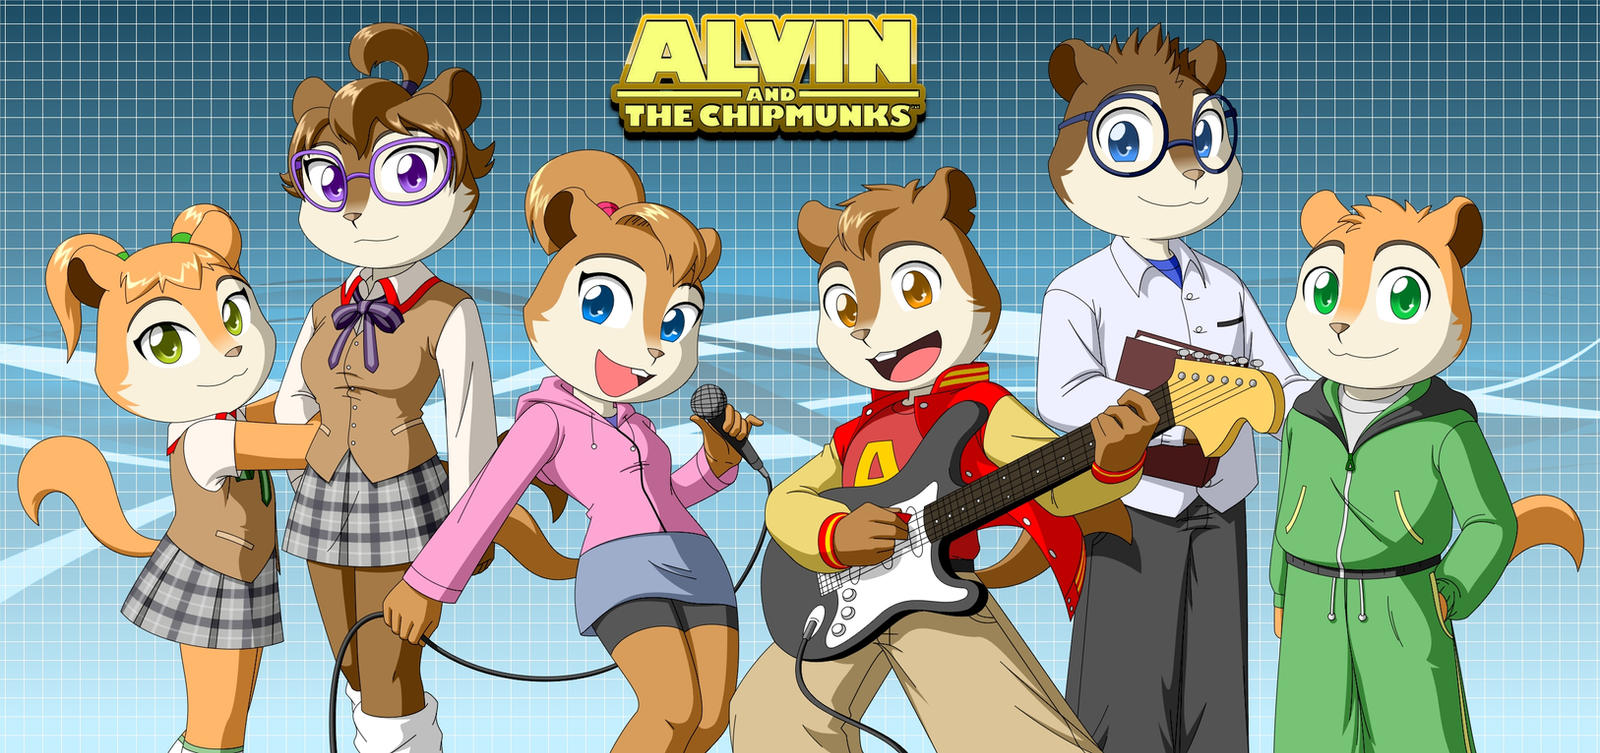 The Chipmunks and Chipettes 2 by Pak009